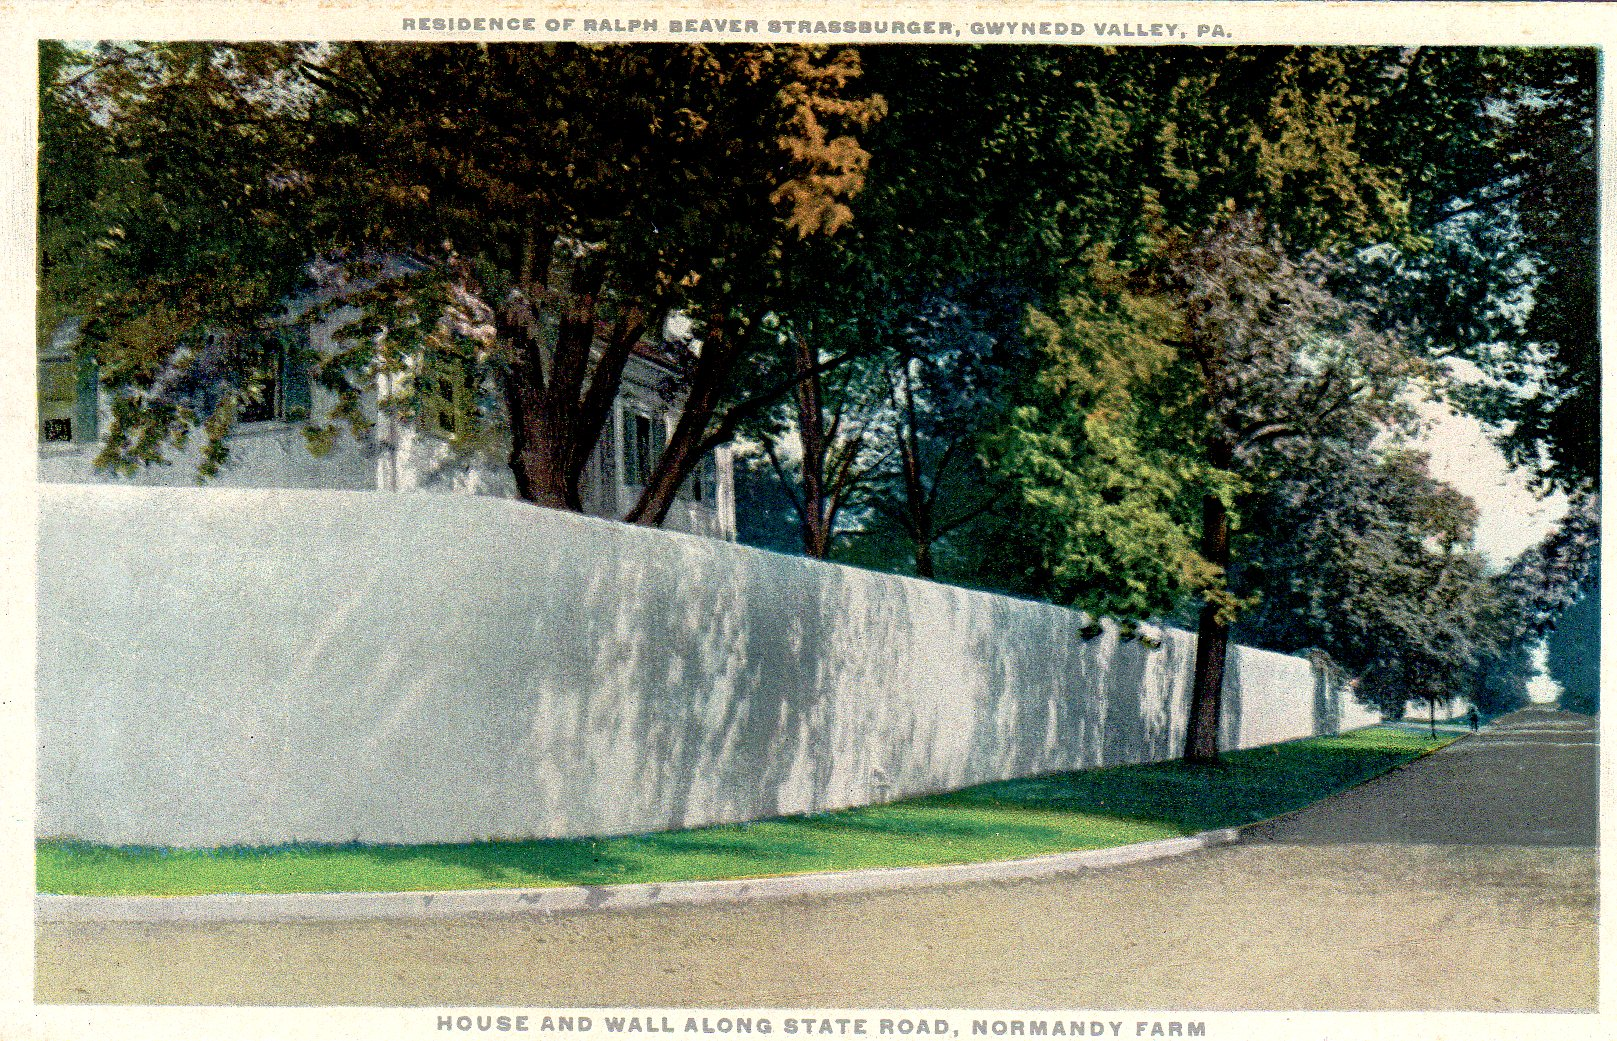 Post Card Collection (E Simon)_2682_78_Home Ralph Beaver Strassburger, Gwynedd Valley, Pa_House & Wall, State Rd, Normandy Farm